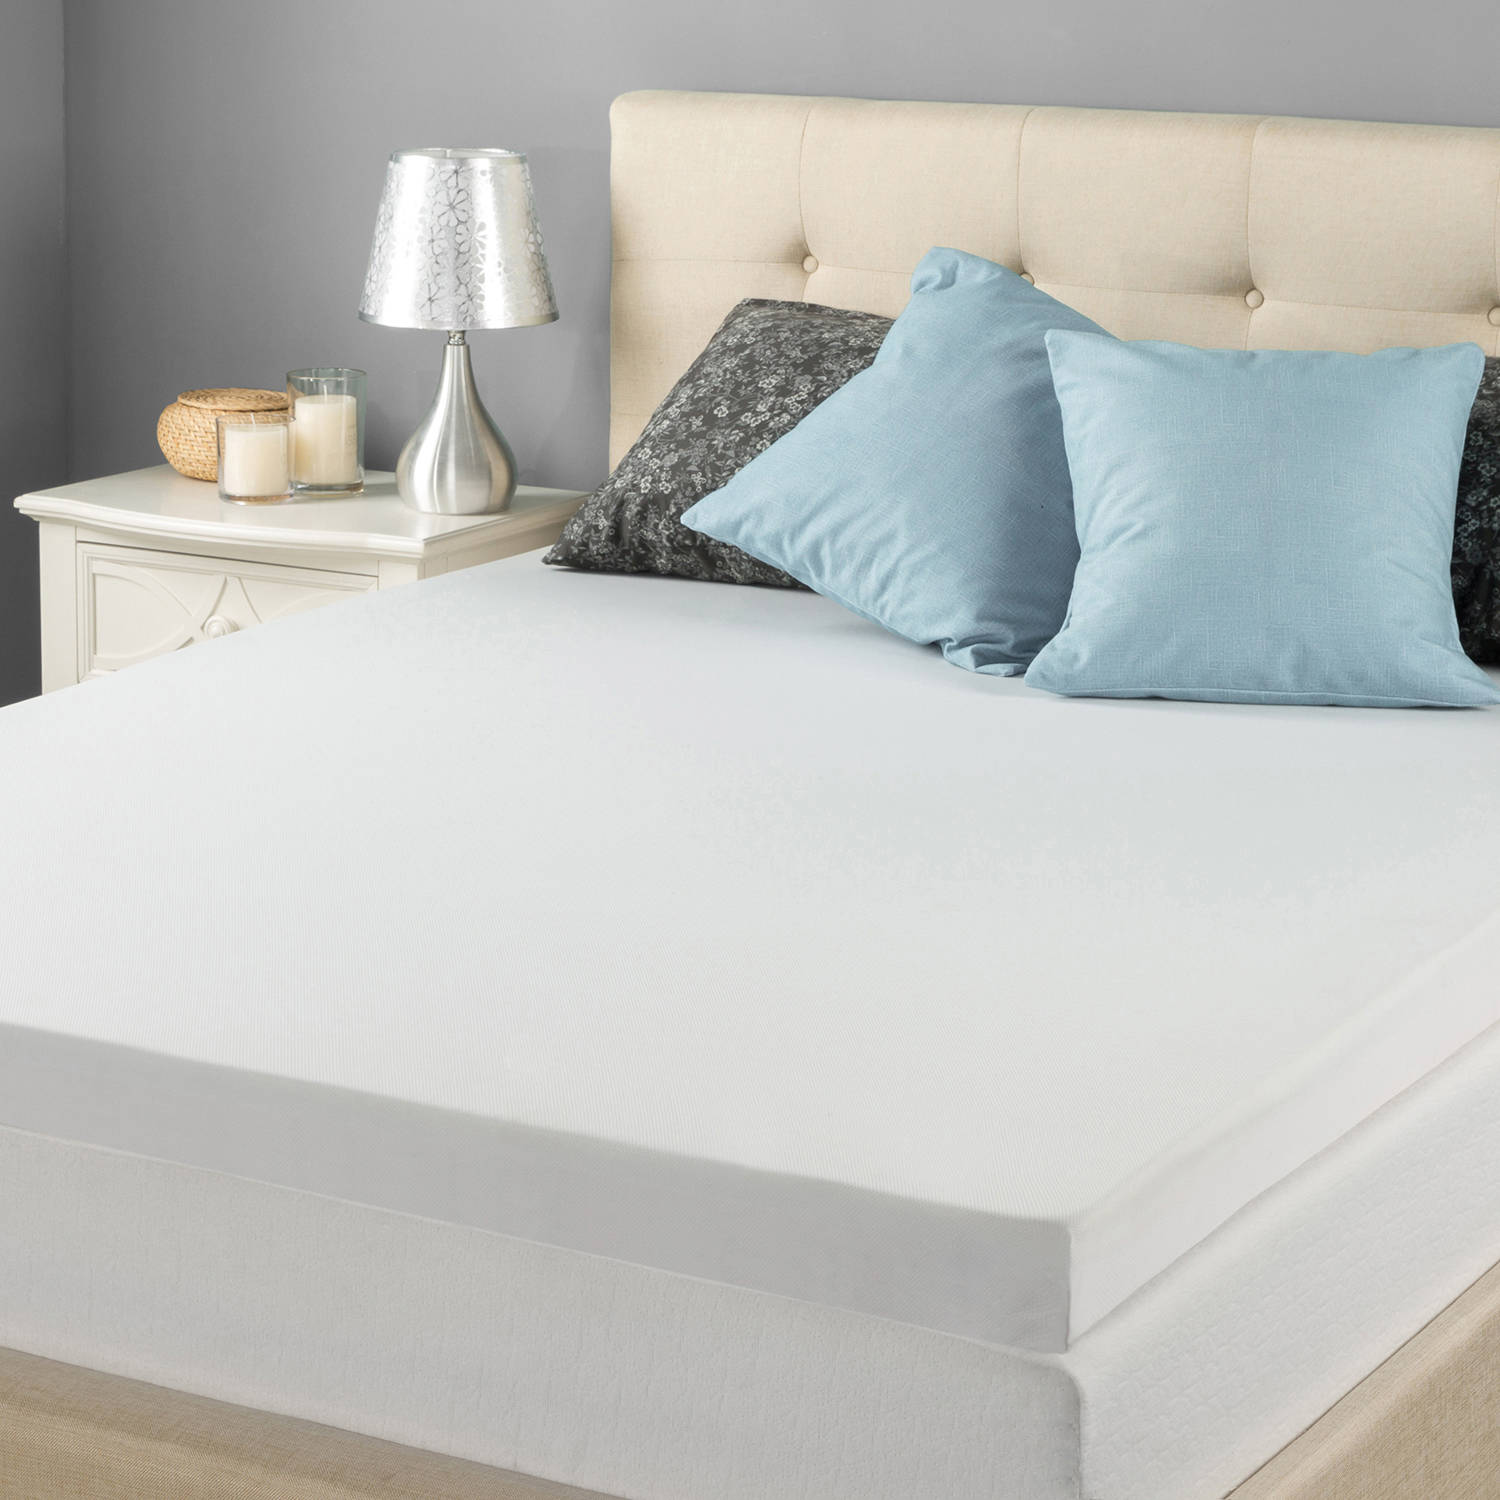 How Much Do Mattresses Cost Mattress Toppers How Much Does A Tempurpedic King Size Mattress